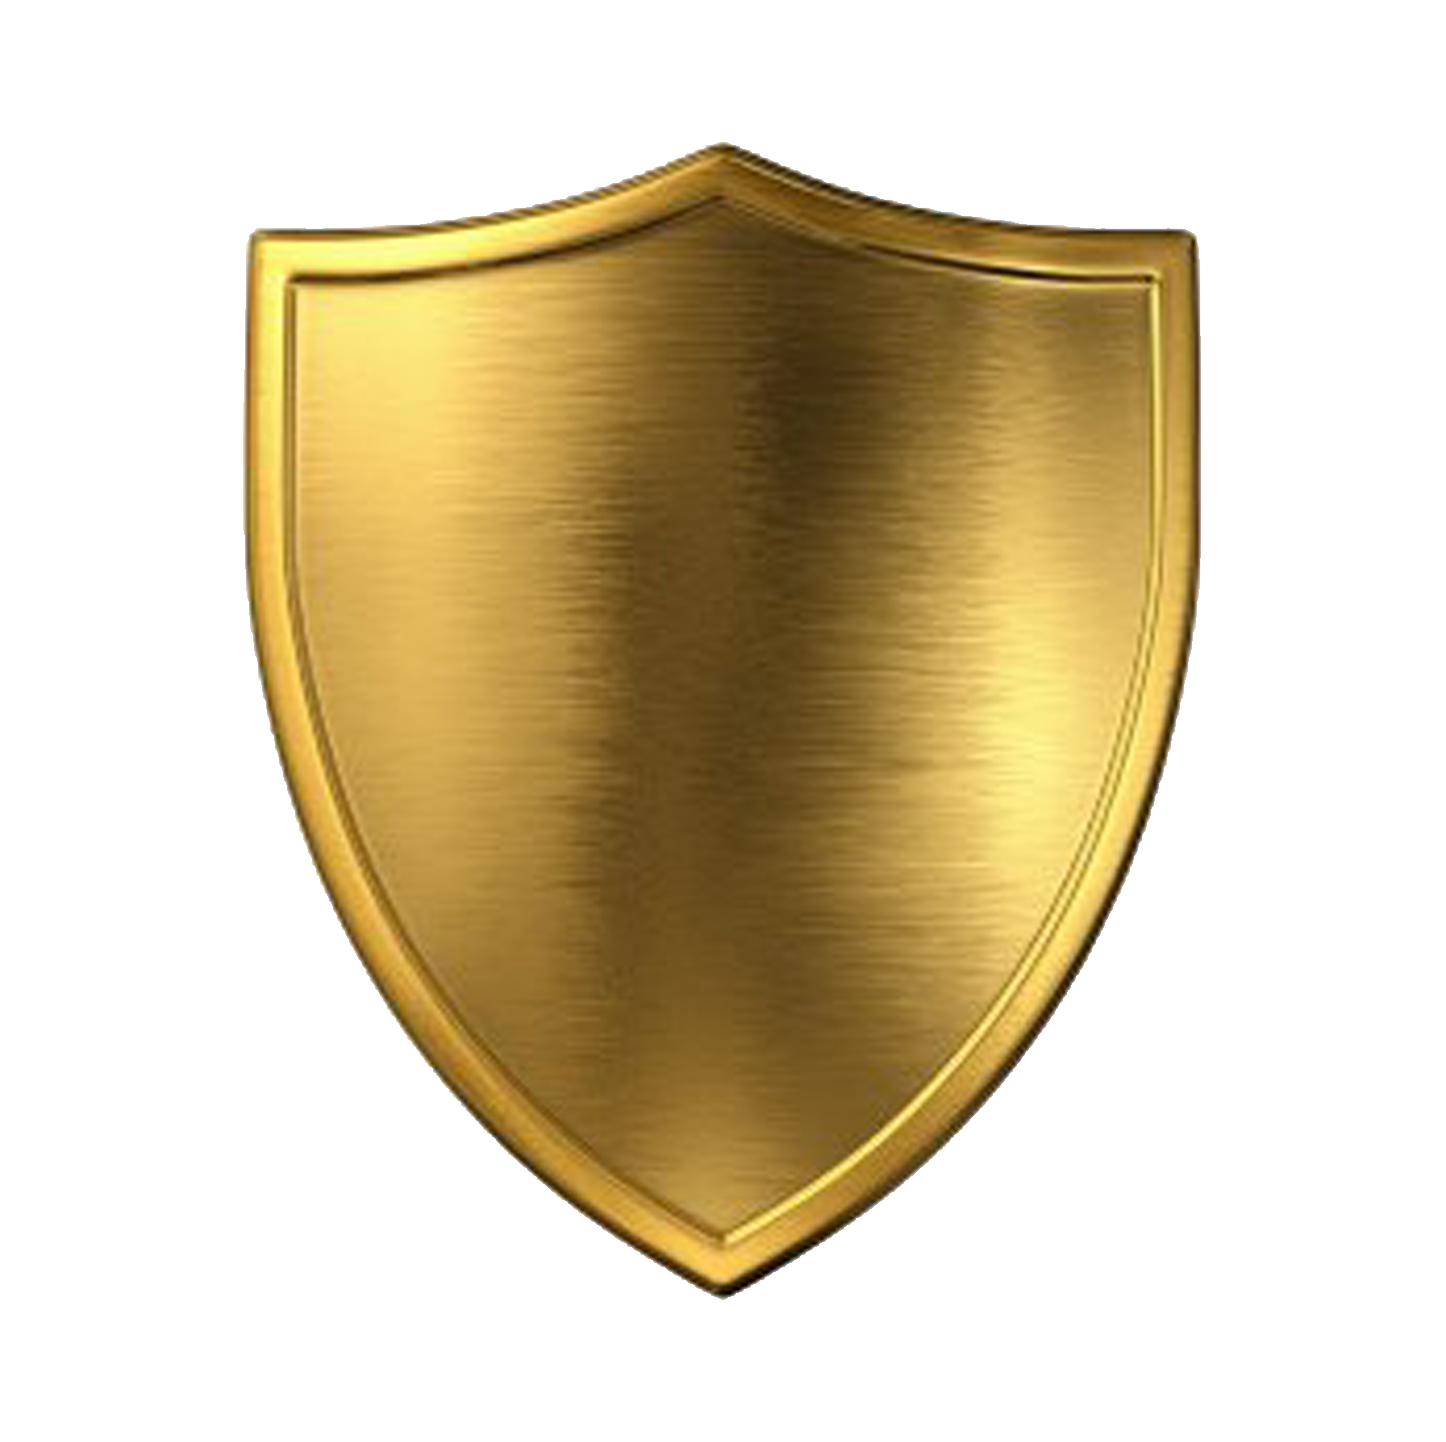 gold shield PNG image, free picture download - Shield PNG